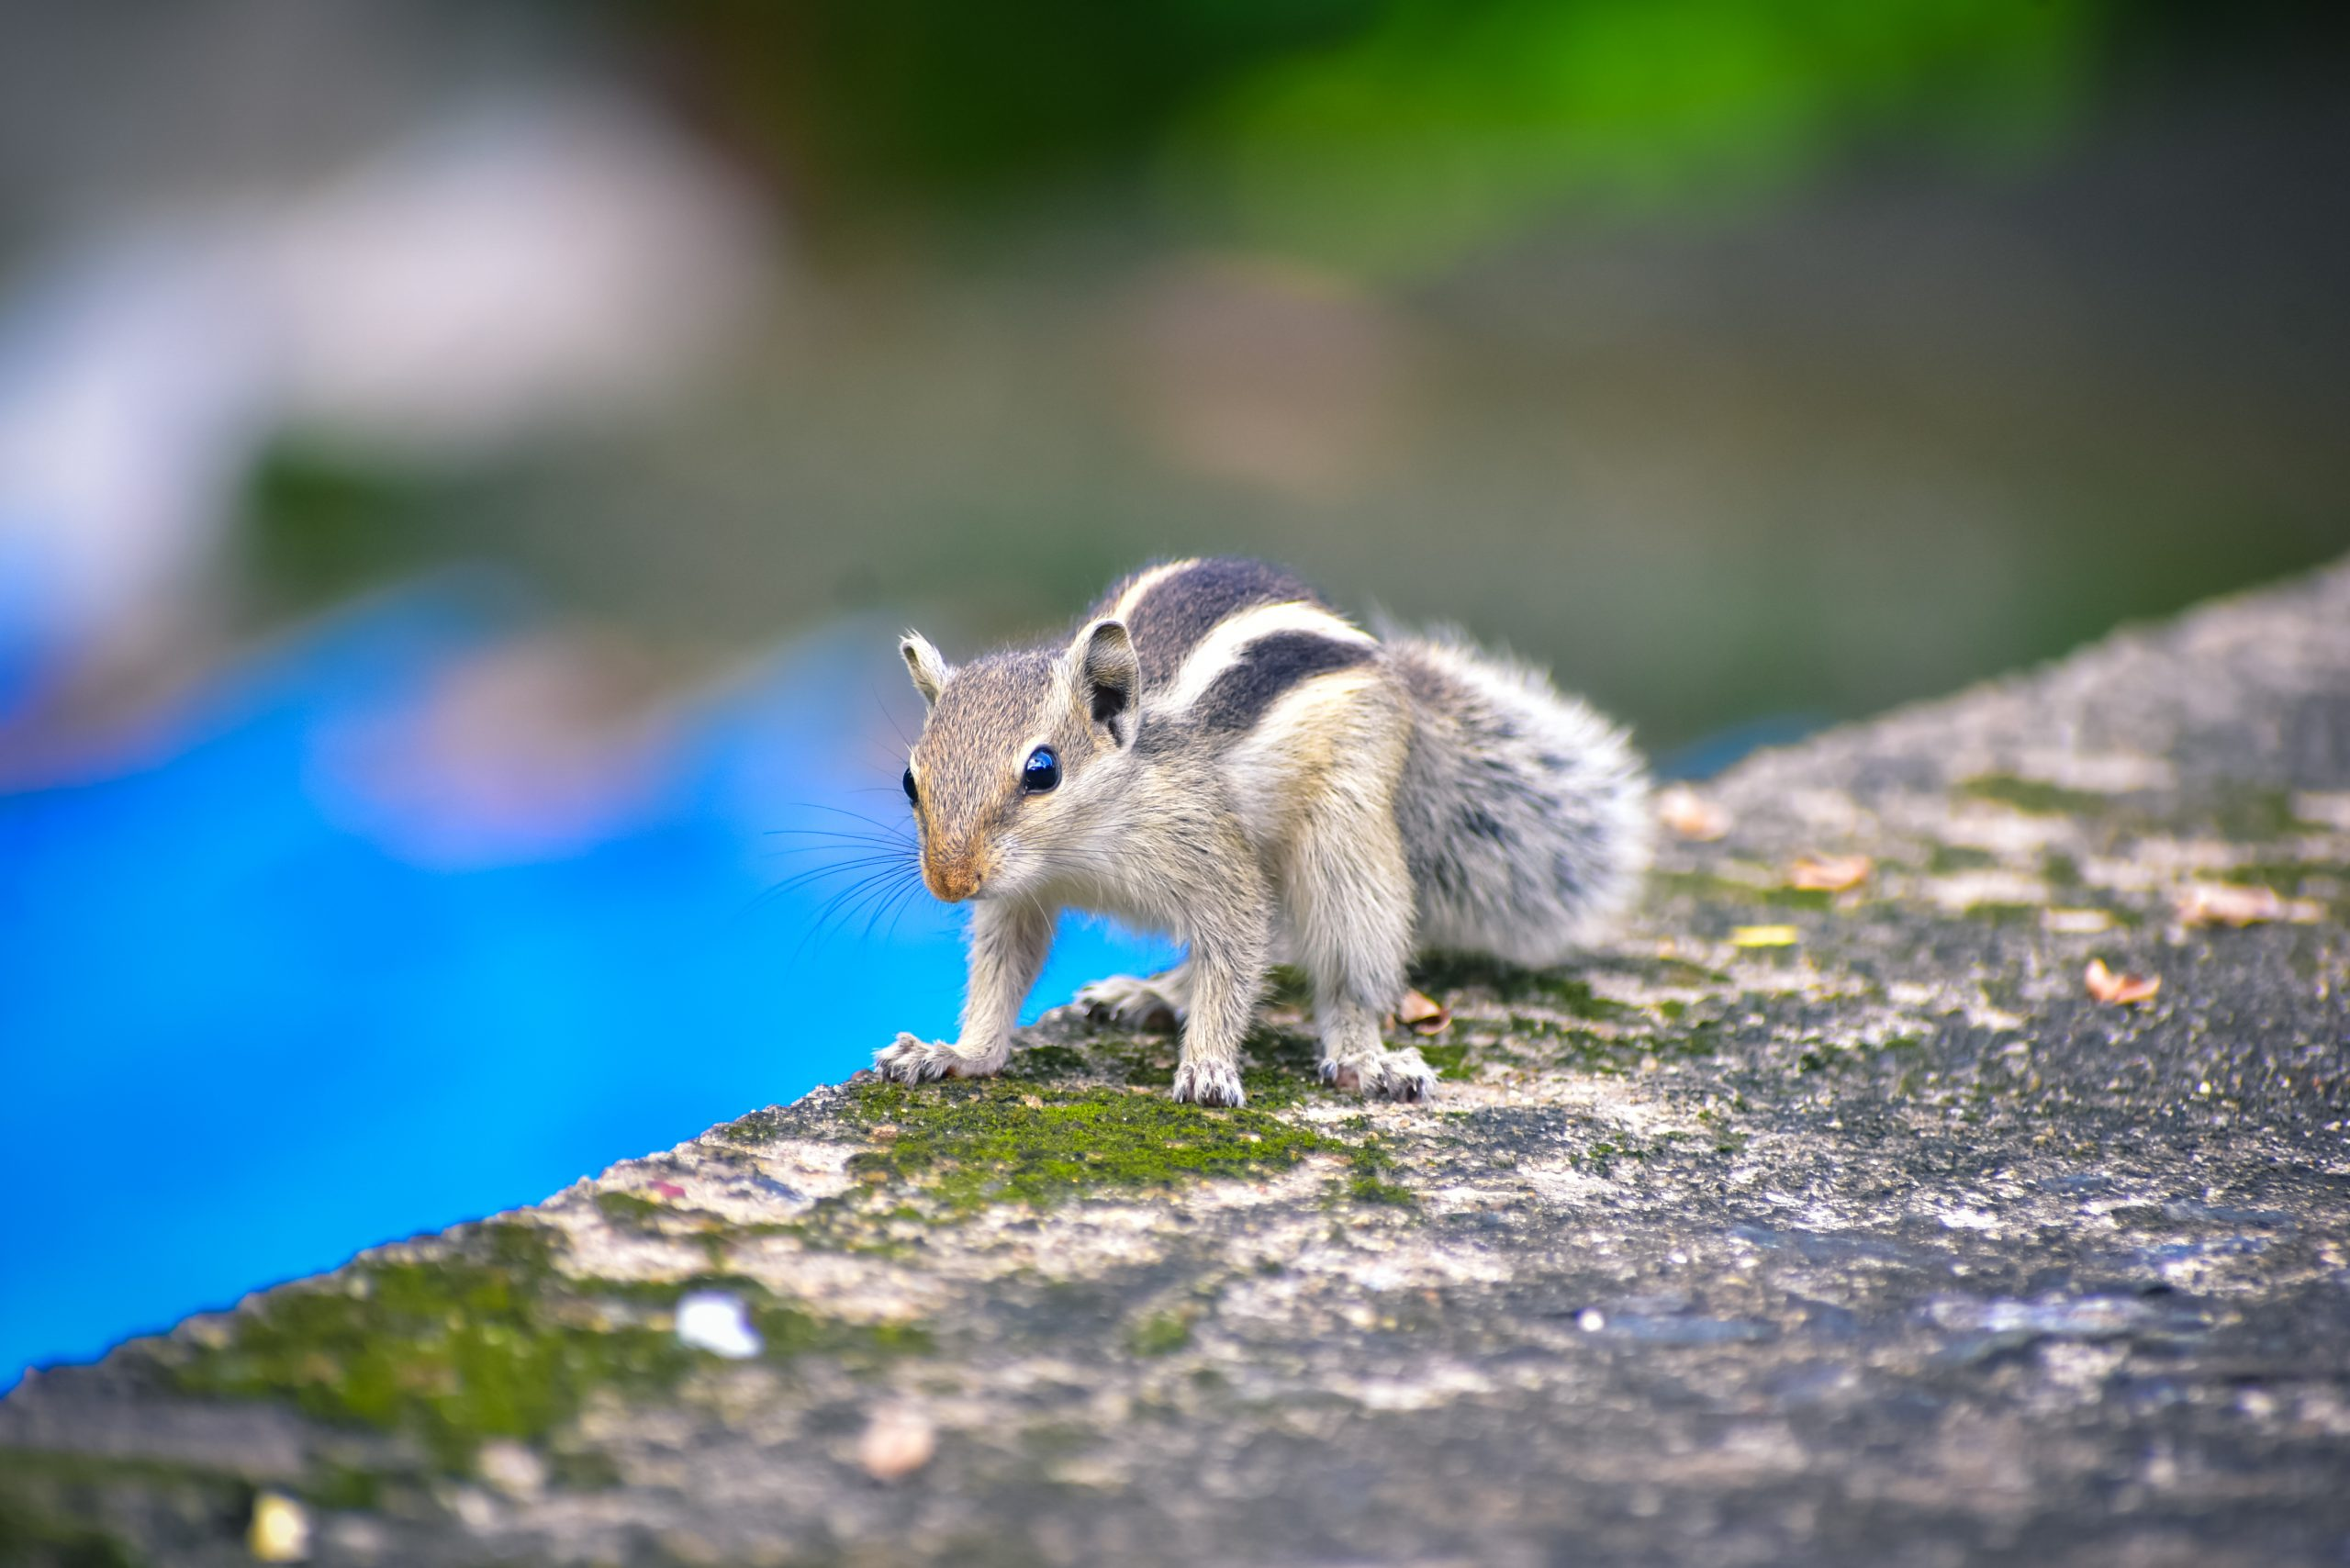 Eastern Chipmunk in a Cement On Focus